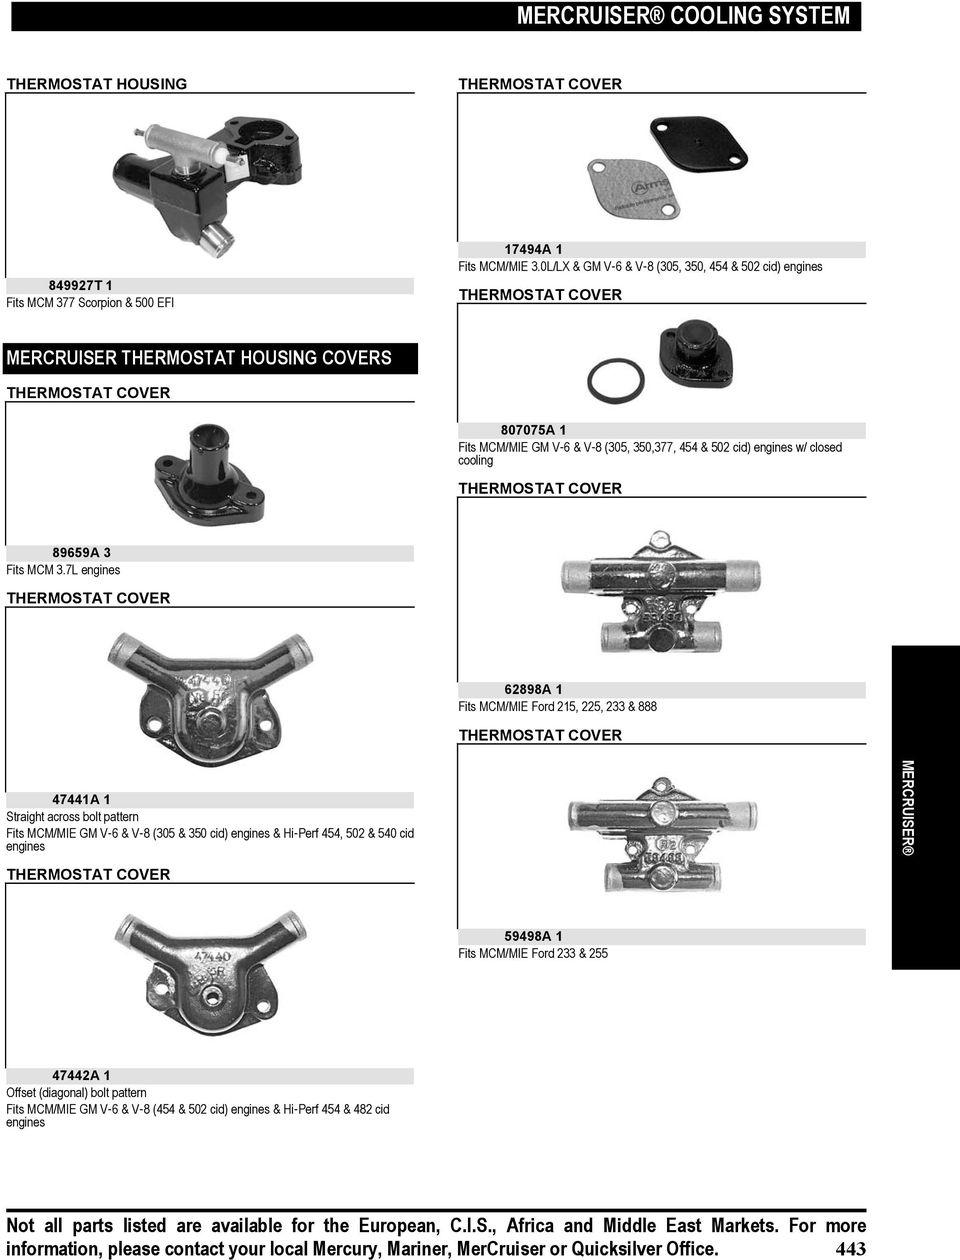 Mercruiser Cooling System Pdf 350 Engine Belt Pulleys Diagram W Closed Thermostat Cover 89659a 3 Fits Mcm